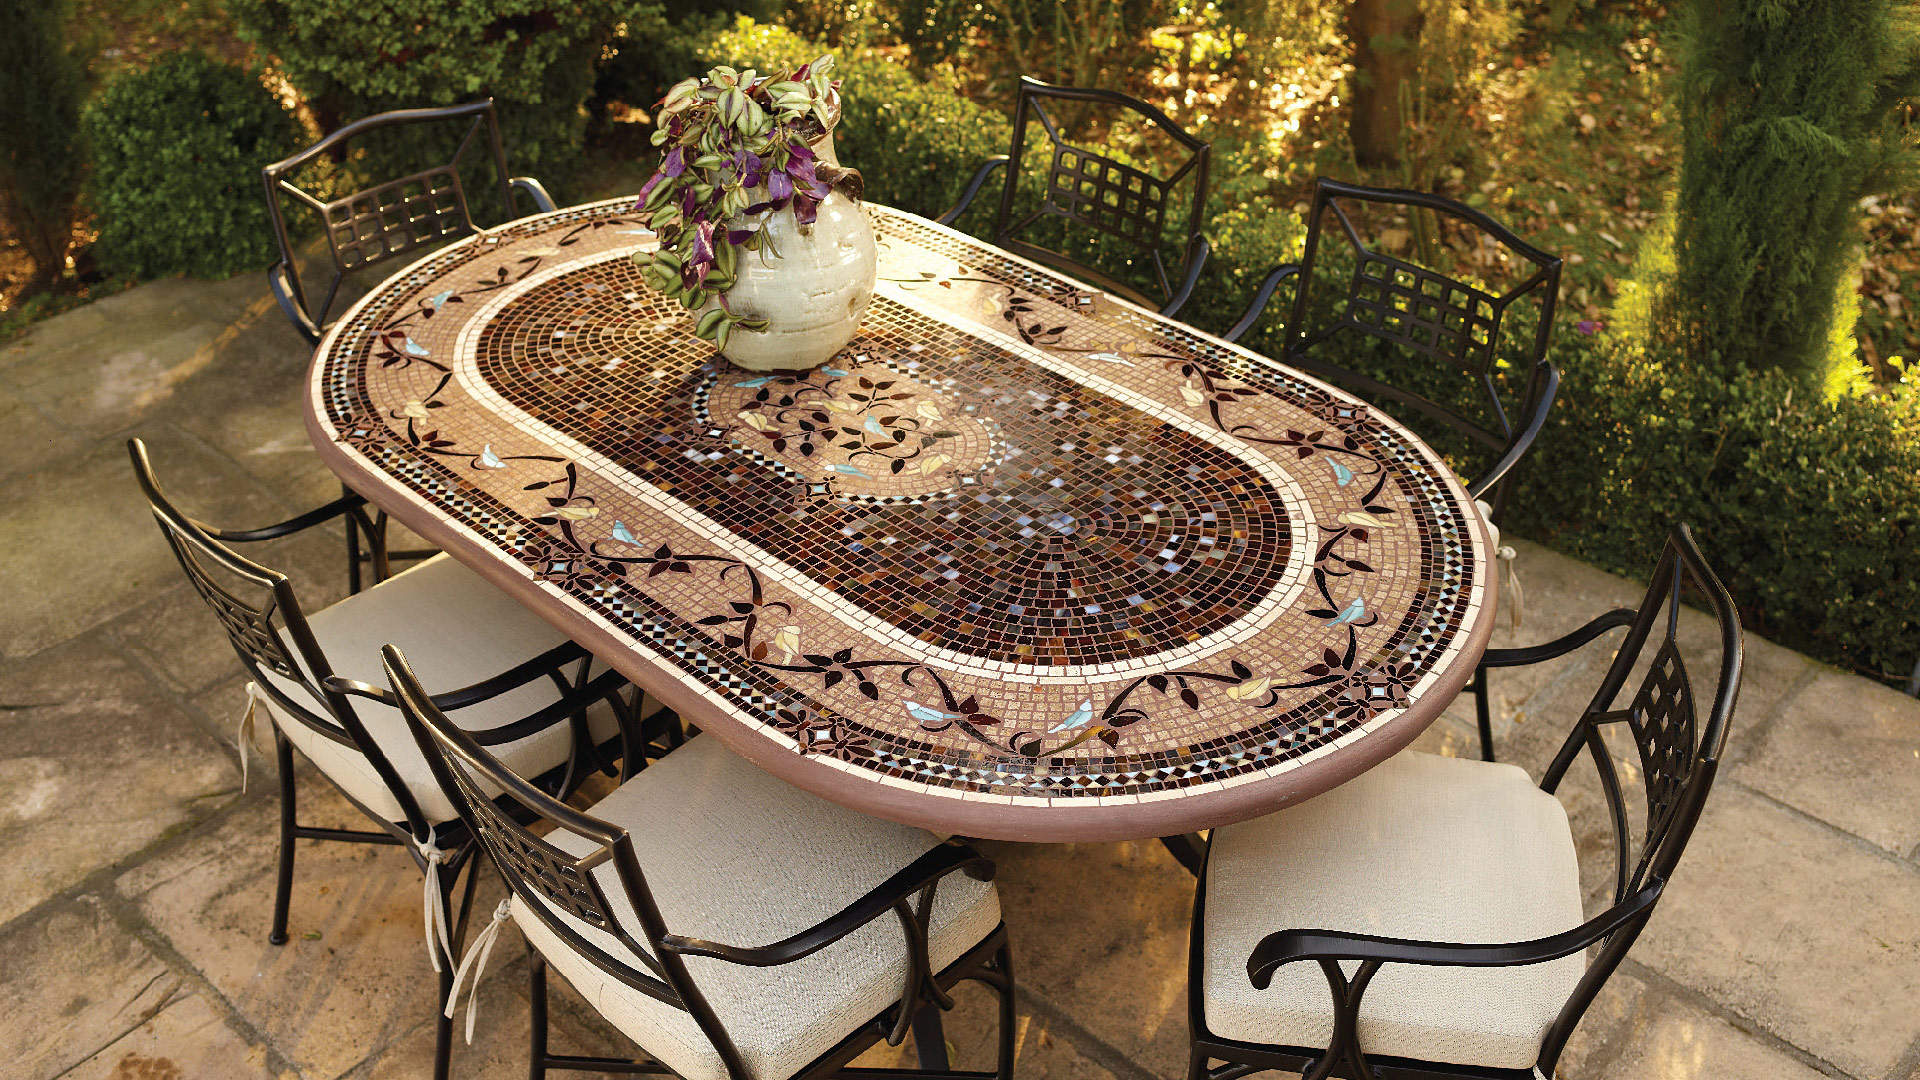 mosaic bistro table dining and chairs outdoor side room decor tile accent antique gold console dresser drawer pulls garden storage units laminate flooring doorway transition